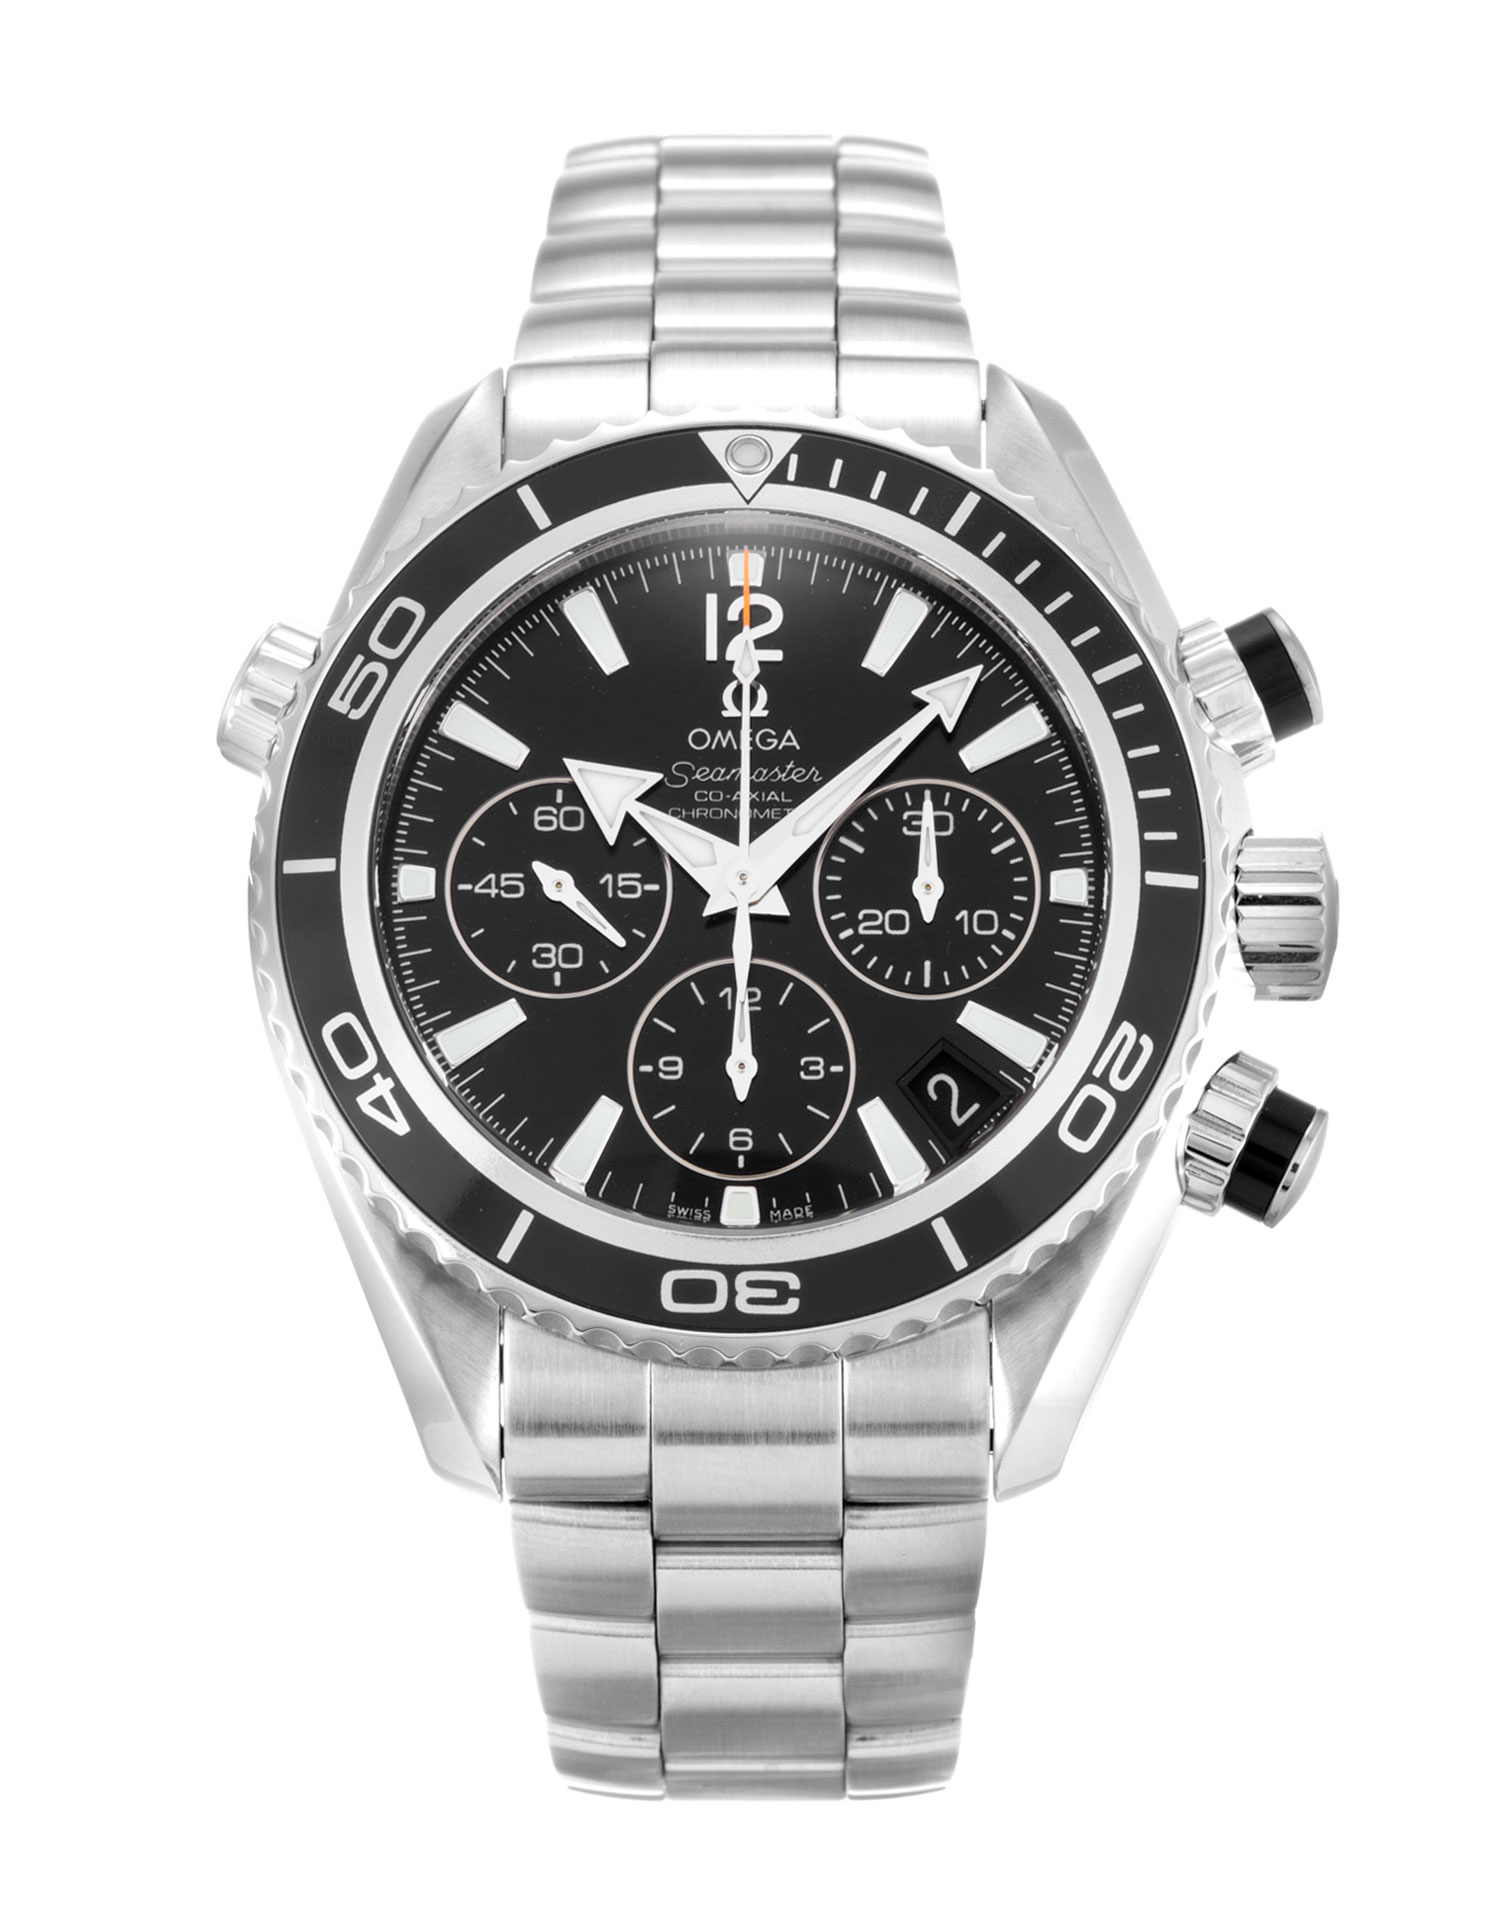 Omega Planet Ocean 222.30.38.50.01.001 Mens 36.5 Mm Steel Case Automatic Movement – iapac.to